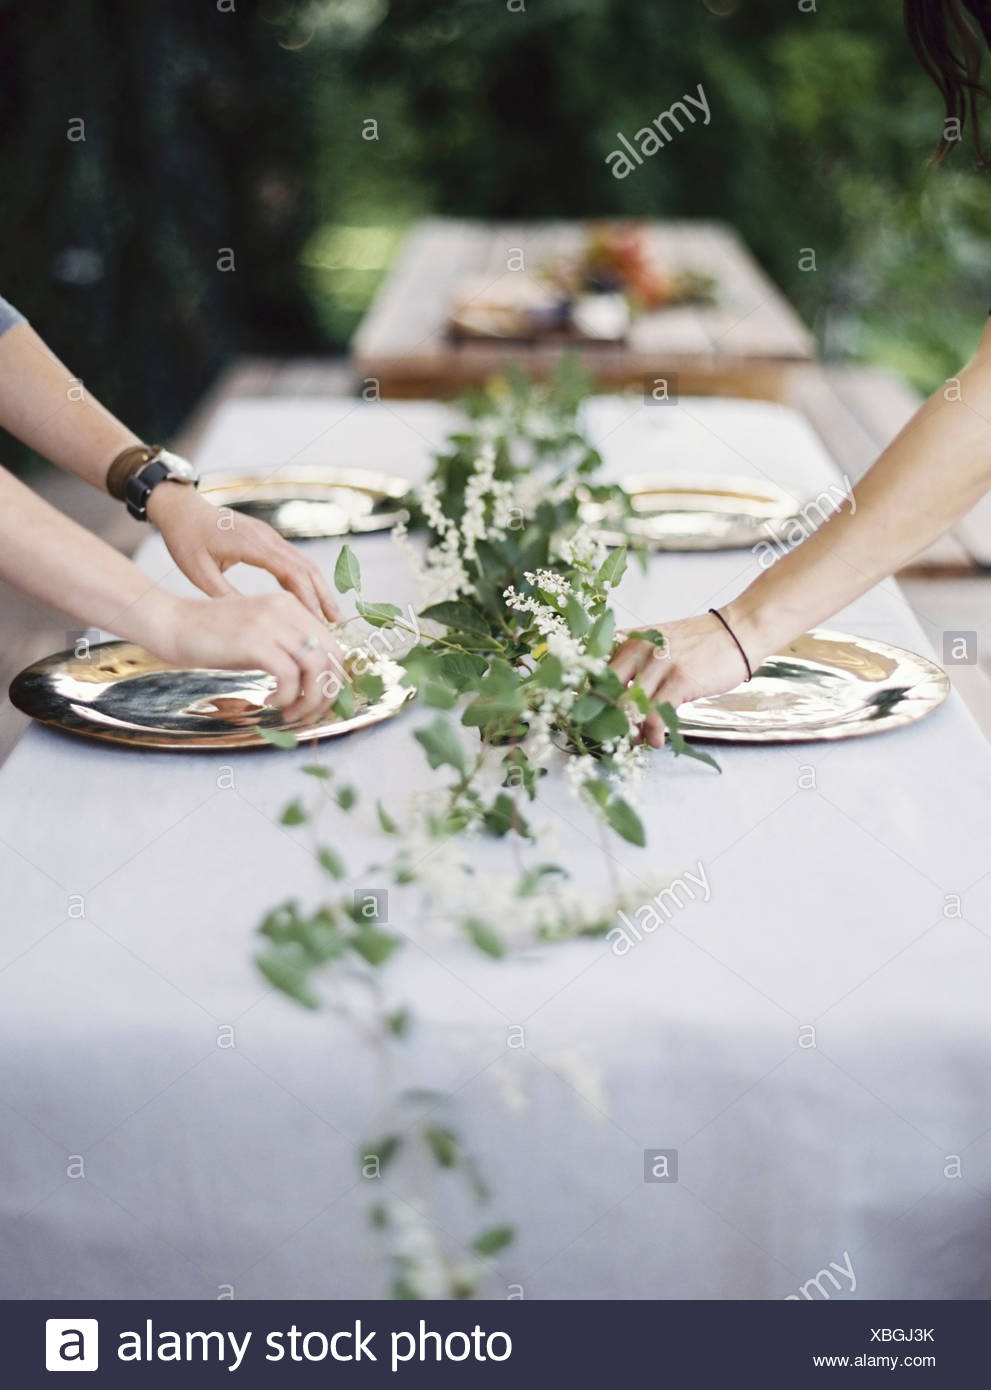 Two people leaning over a table laid outside with a white cloth and a central foliage table decoration - Stock Image